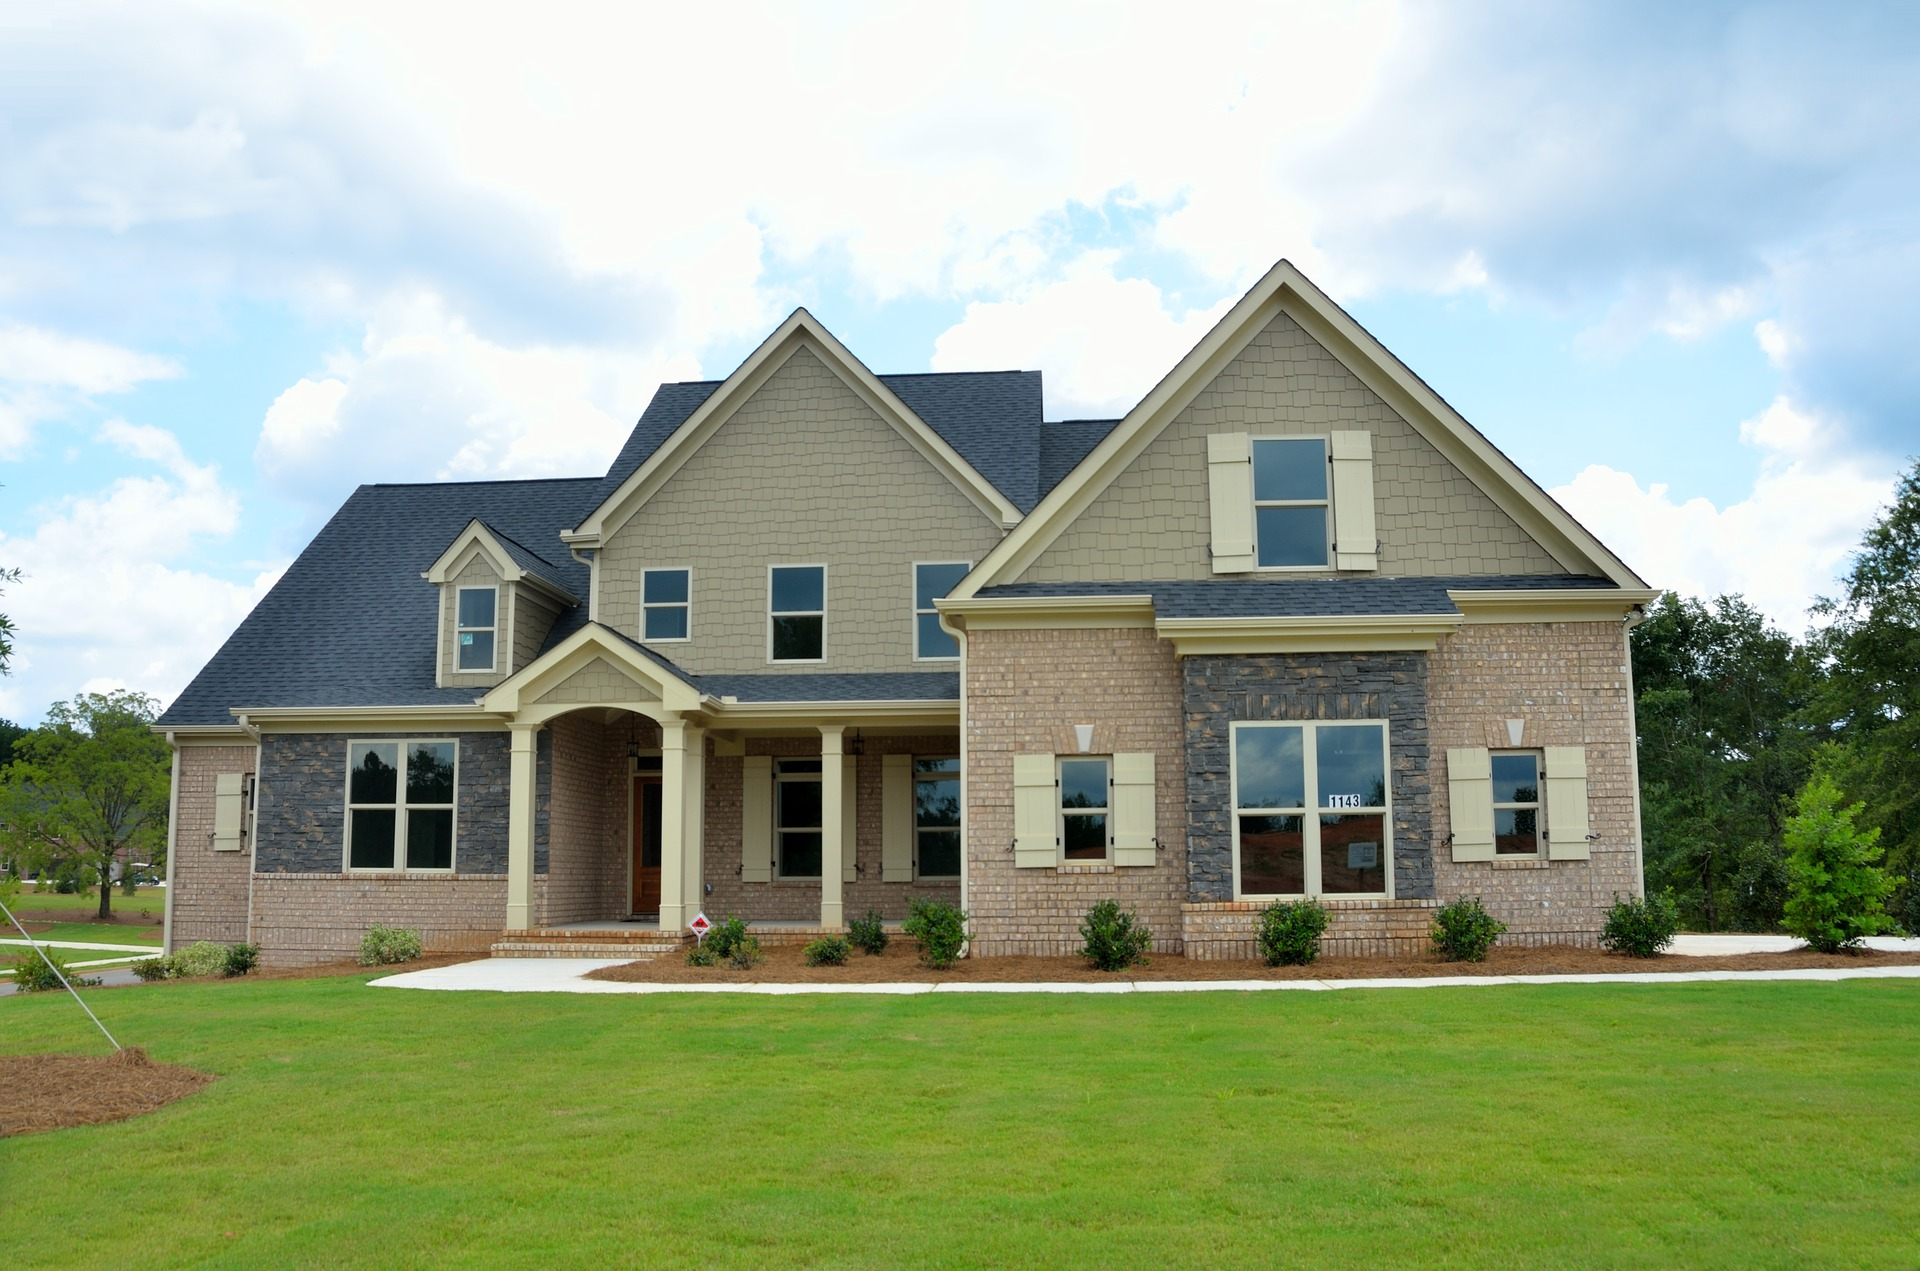 new-home-2409165_1920